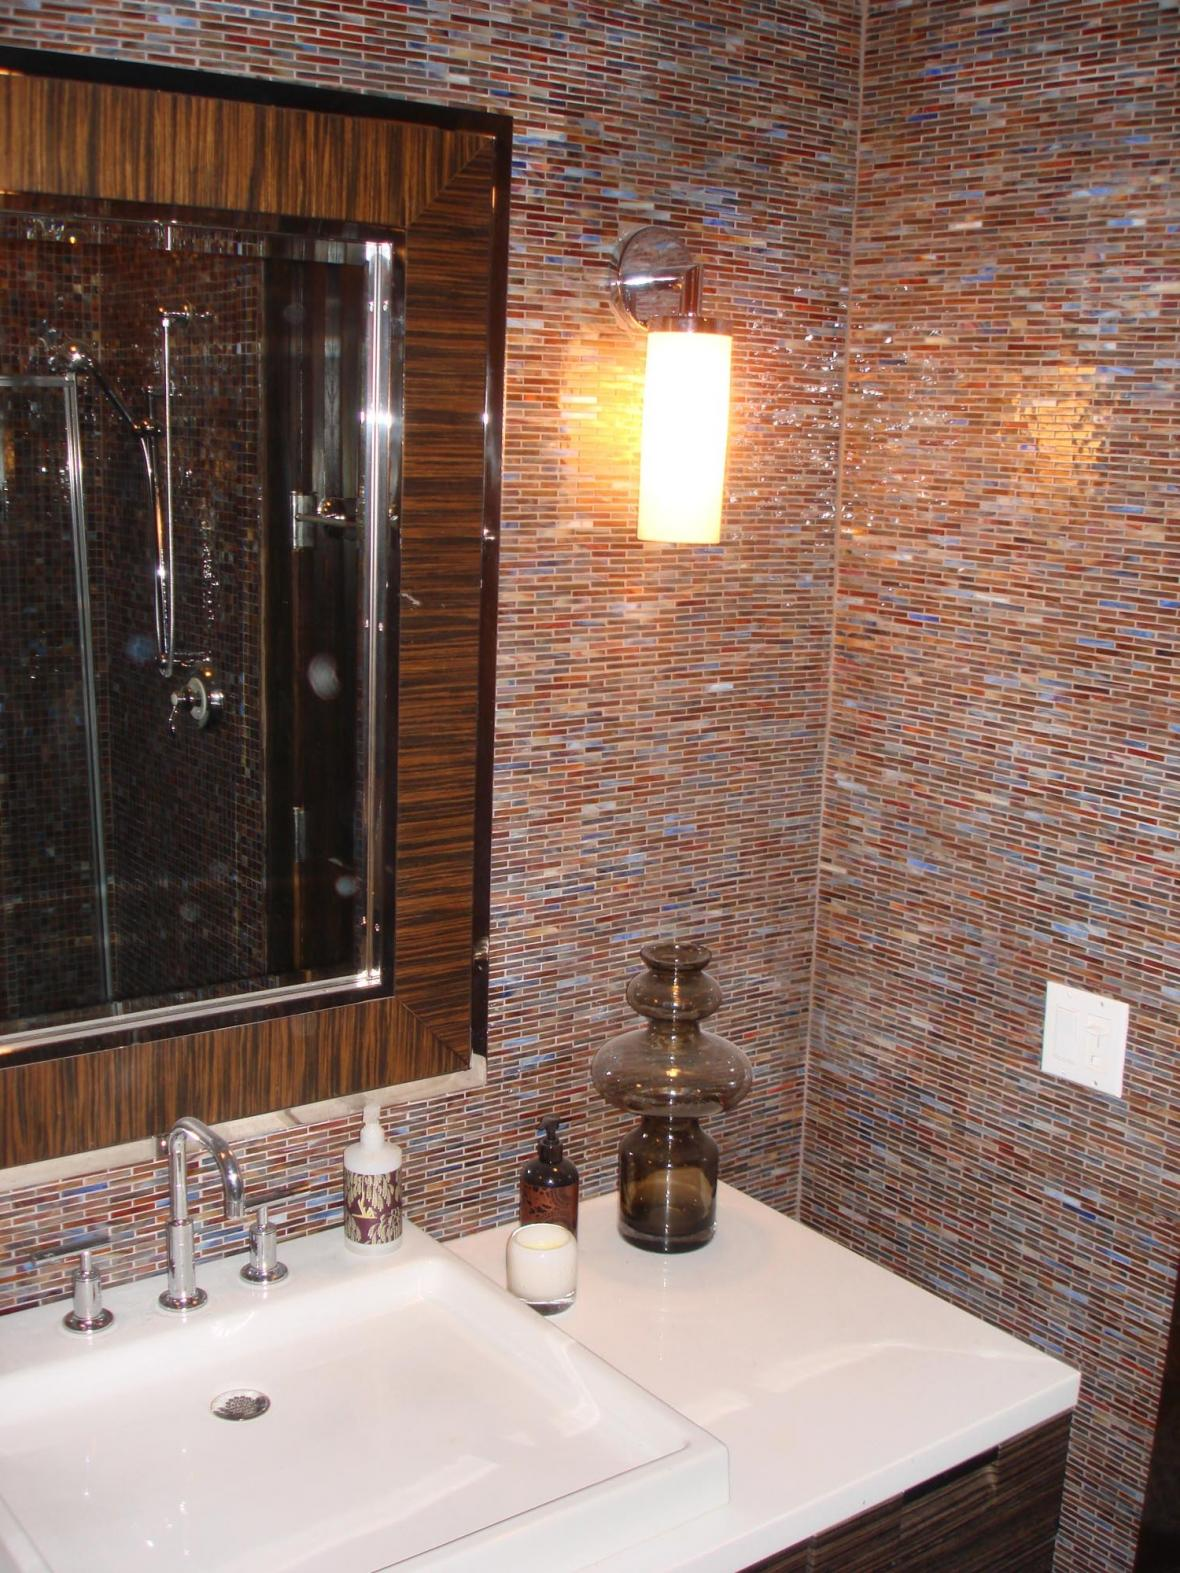 bathroom walls new jersey custom tile. Black Bedroom Furniture Sets. Home Design Ideas